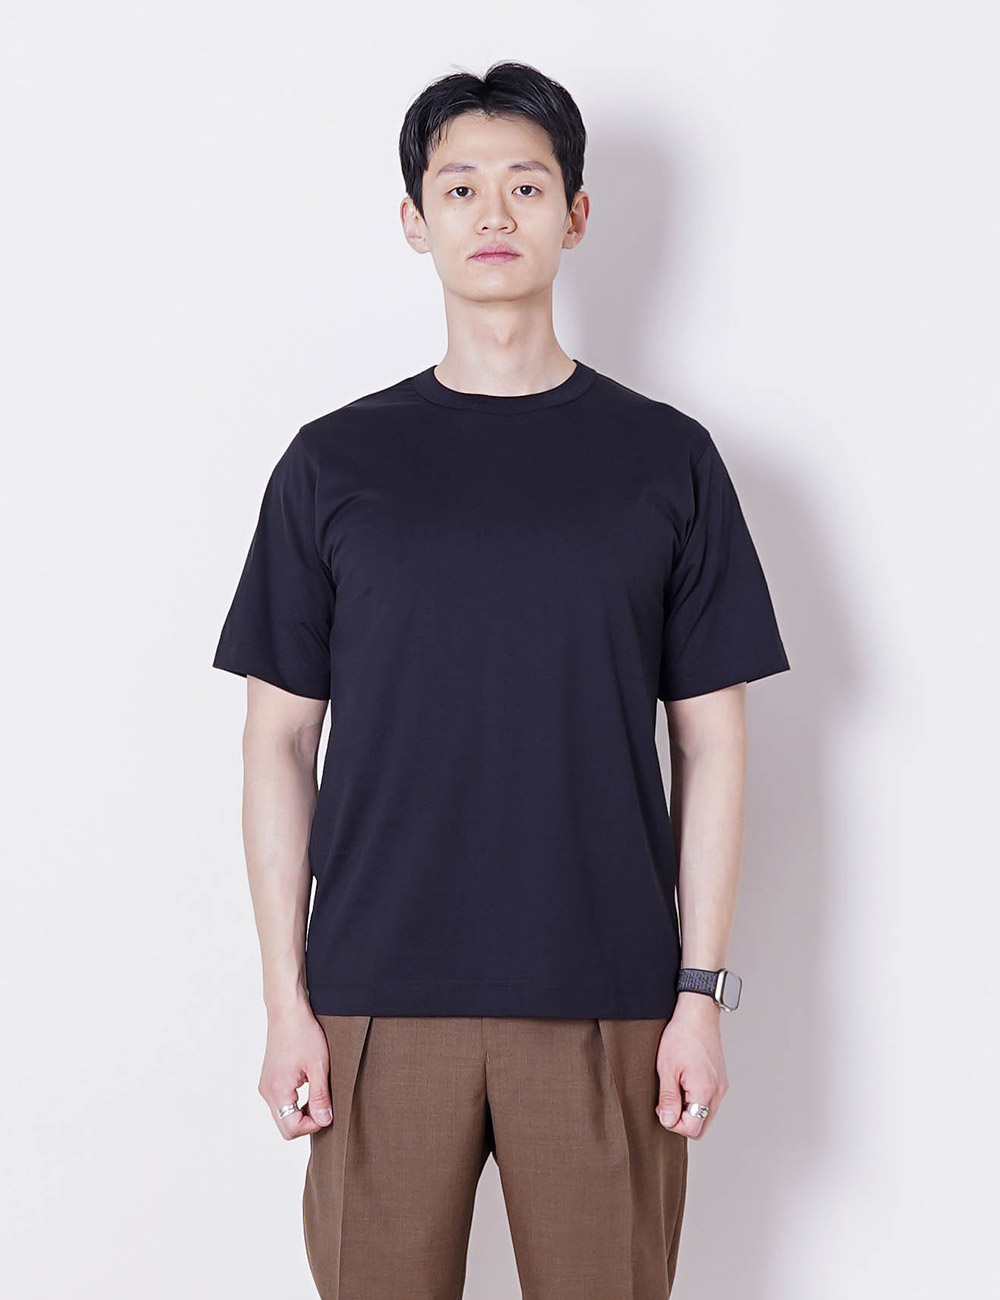 MARKAWARE : ORGANIC PIMA COMPACT YARN 60/2 32G KNIT REGULAR FIT TEE (BLACK)